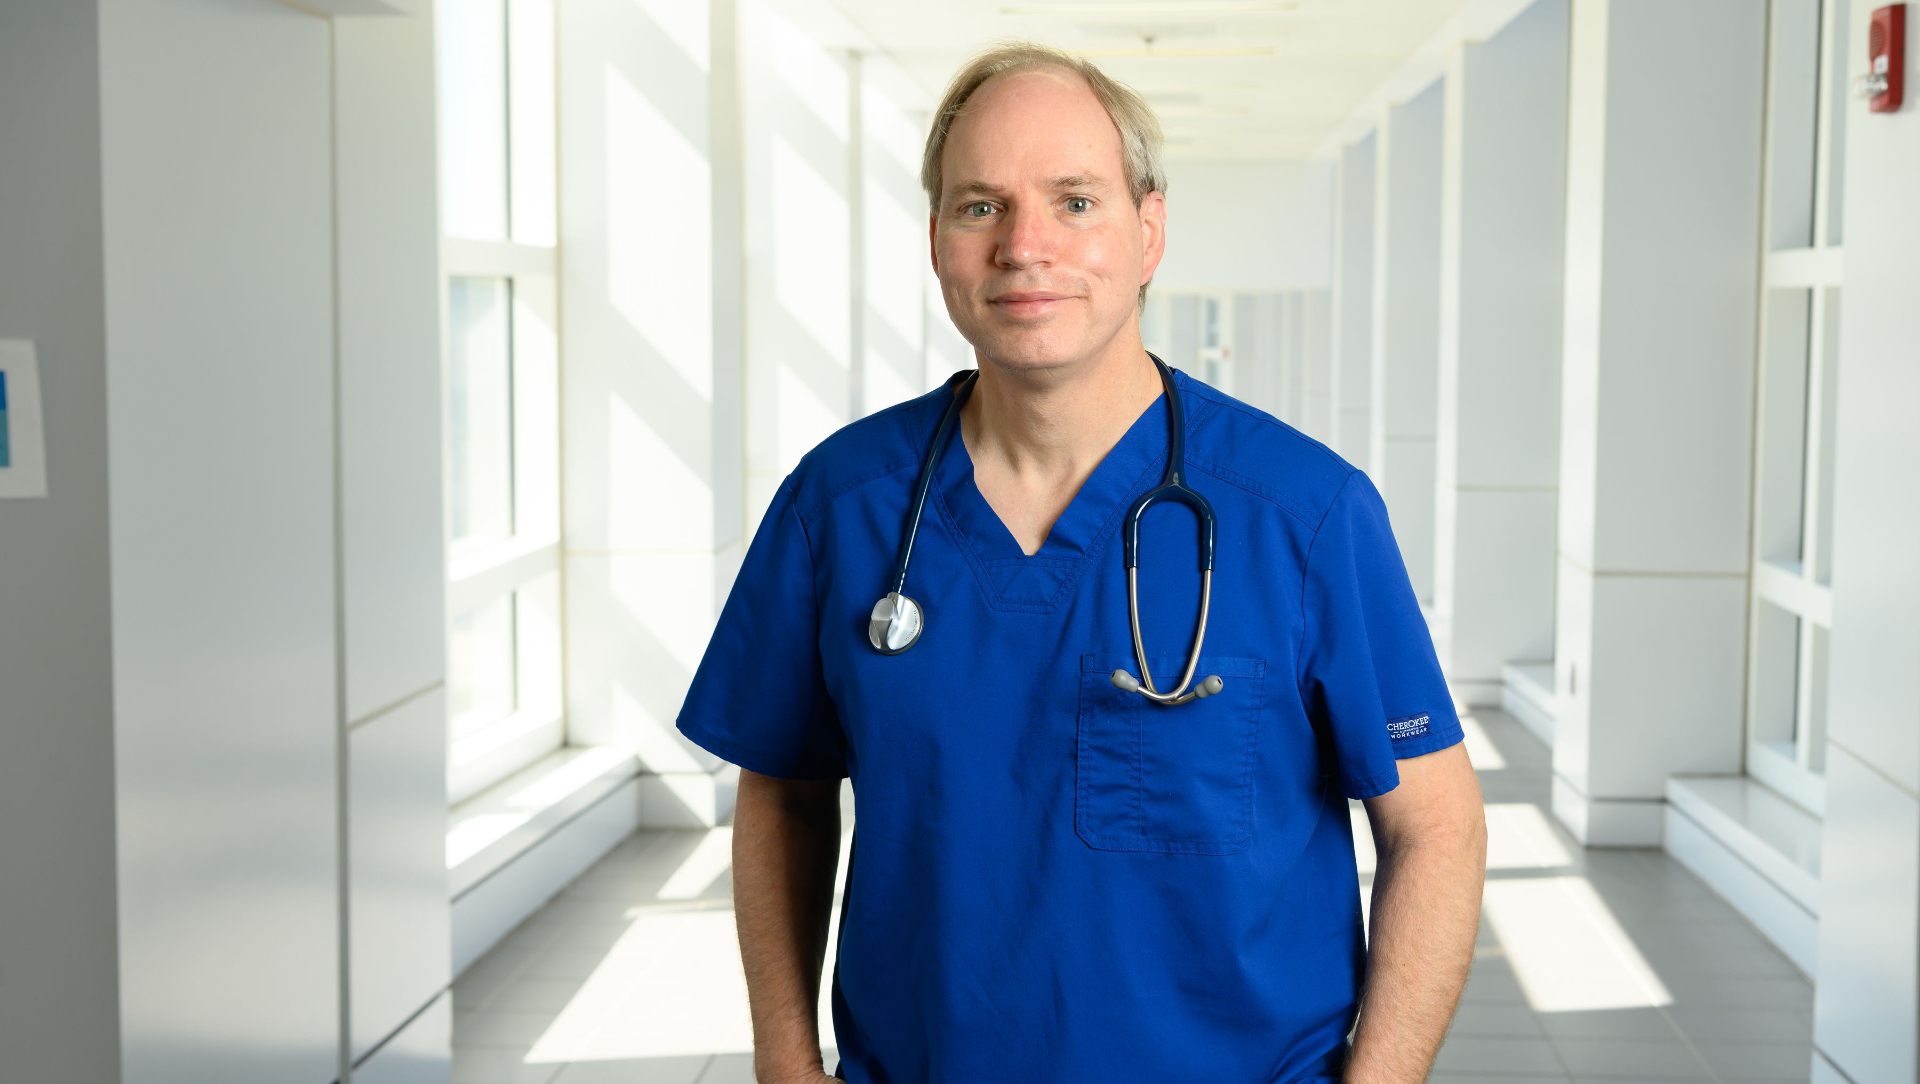 Dr. Michael Anstead, a middle-aged white man with grey hair, stands in the hallway of UK HealthCare wearing blue scrubs with a stethoscope around his neck.